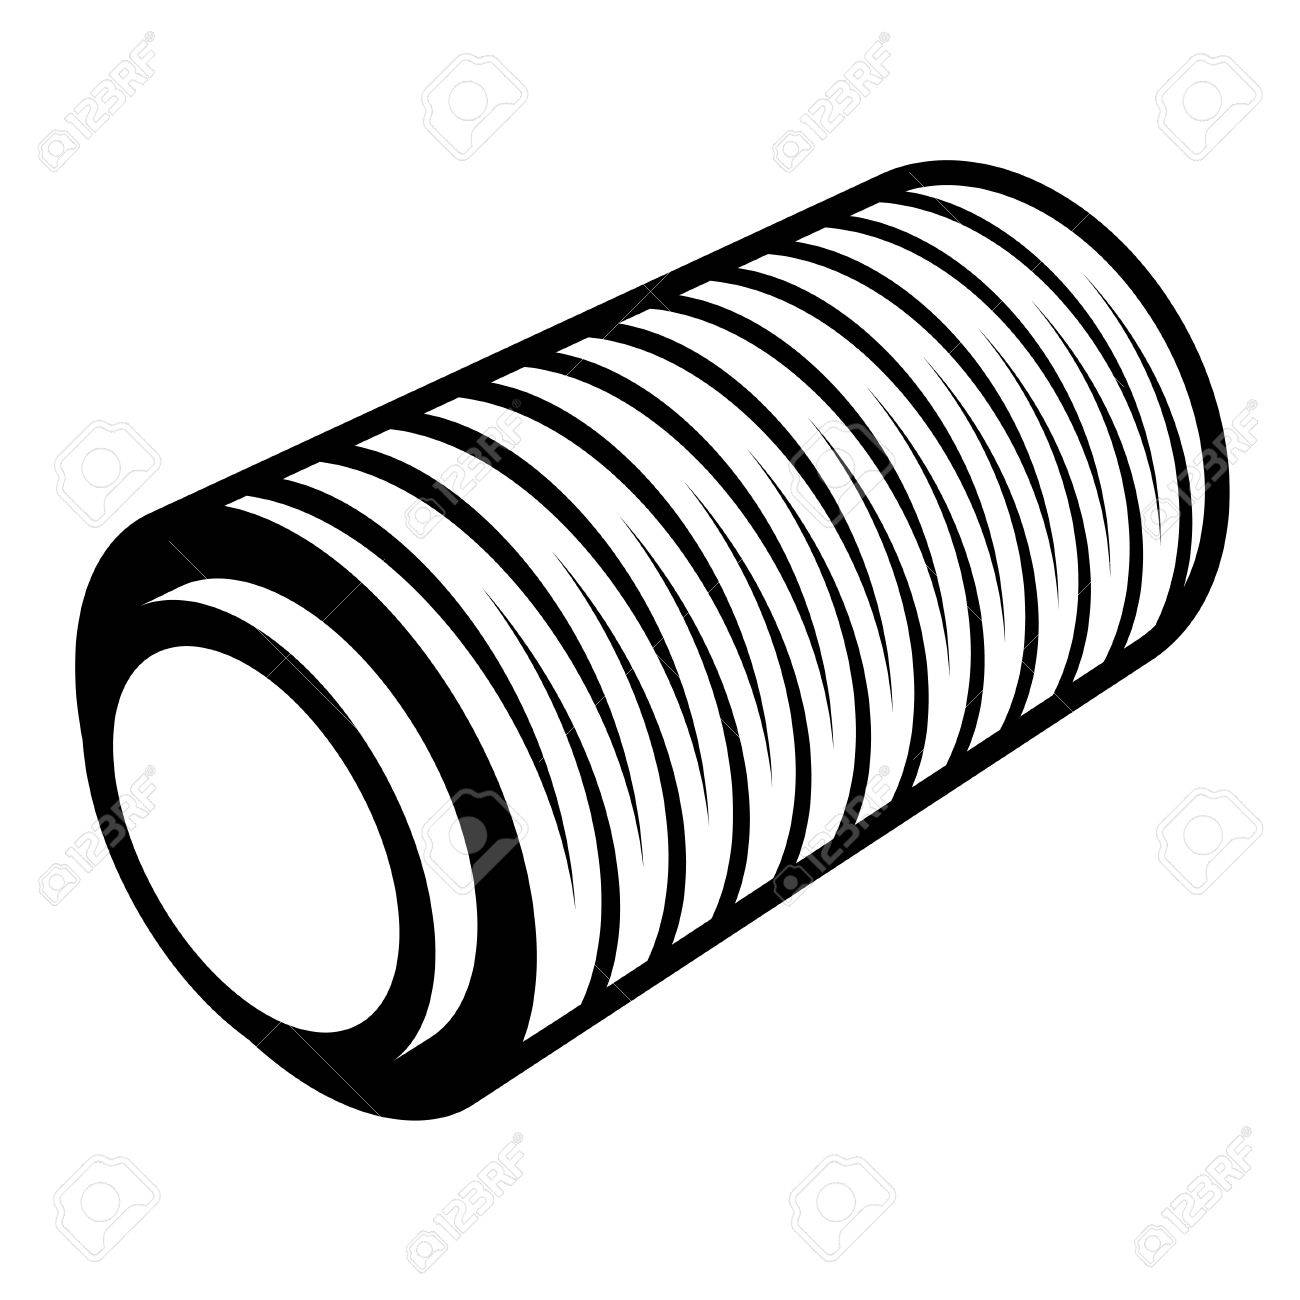 1300x1300 Roll Of Wrapping Foil Thread Spool Royalty Free Cliparts, Vectors